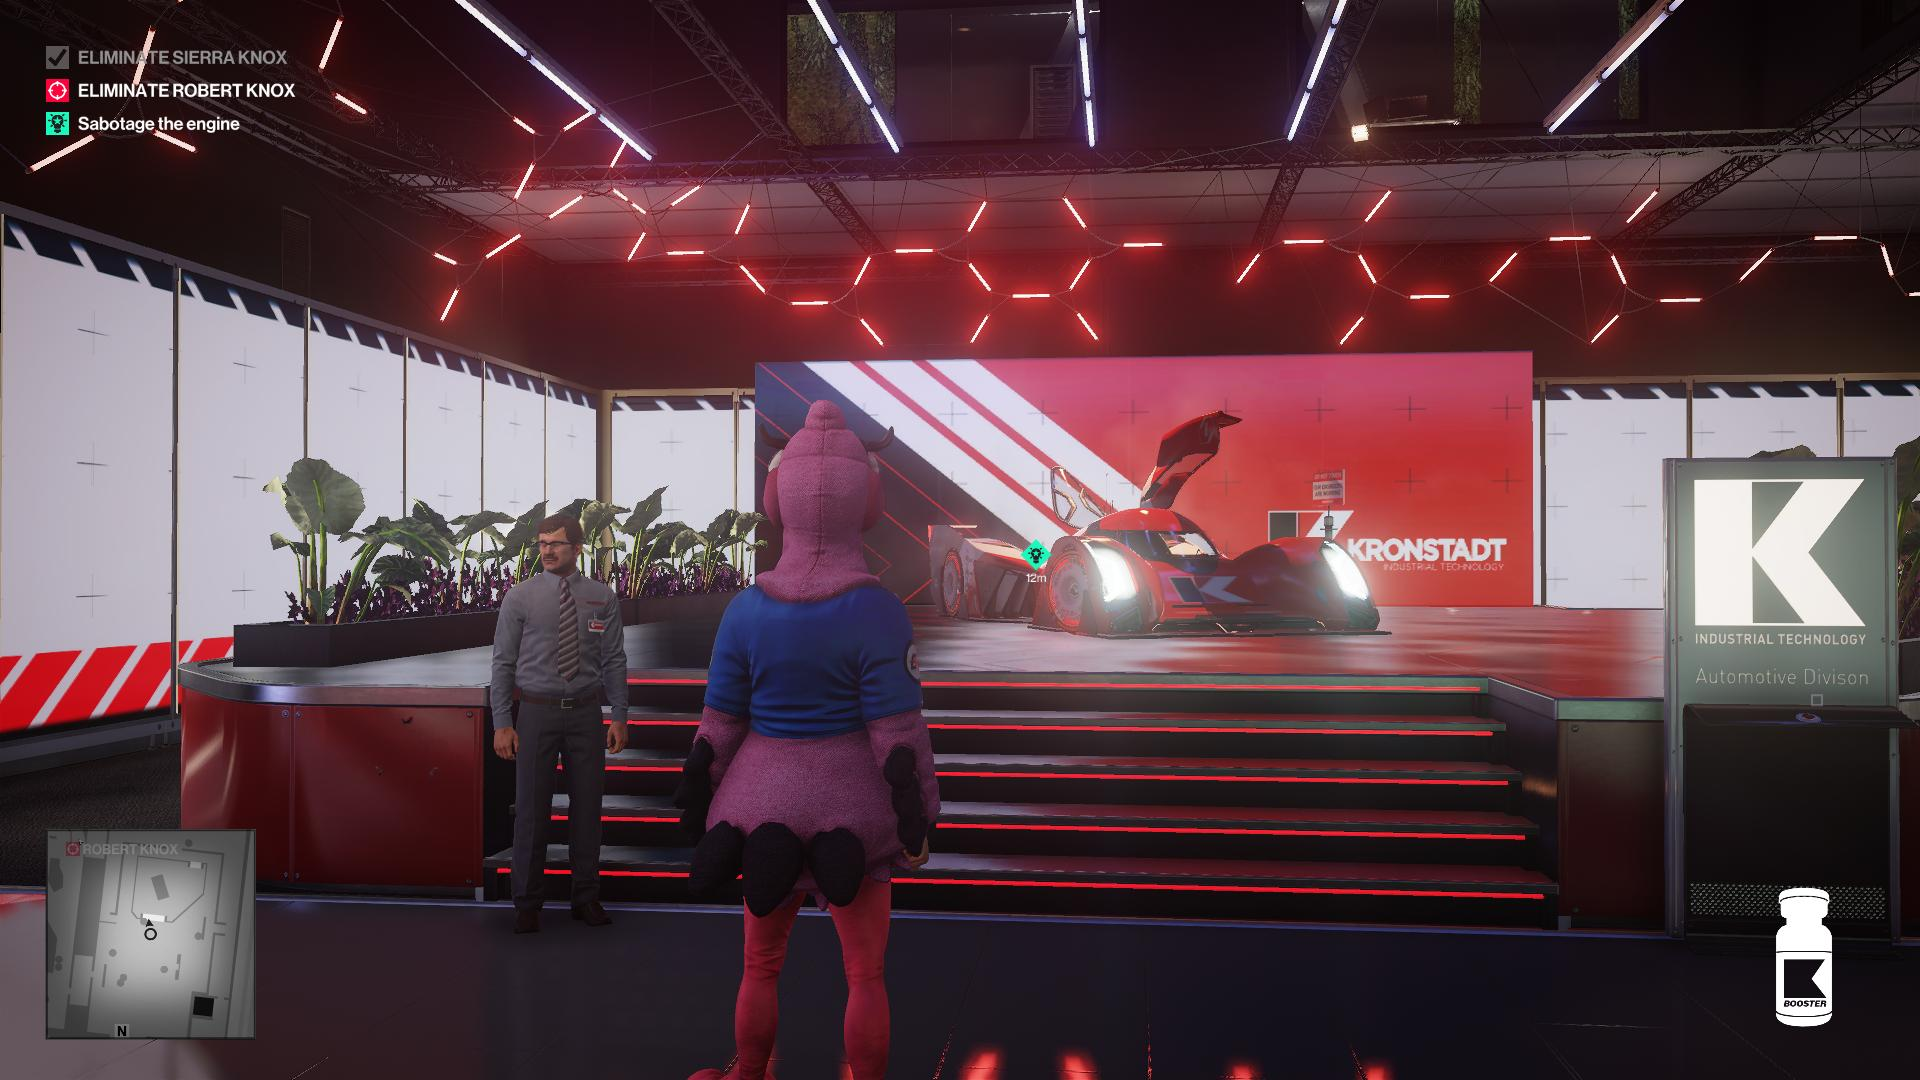 Agent 47, disguised as a mascot, looking at the race car on a podium. One security guard is standing watch.